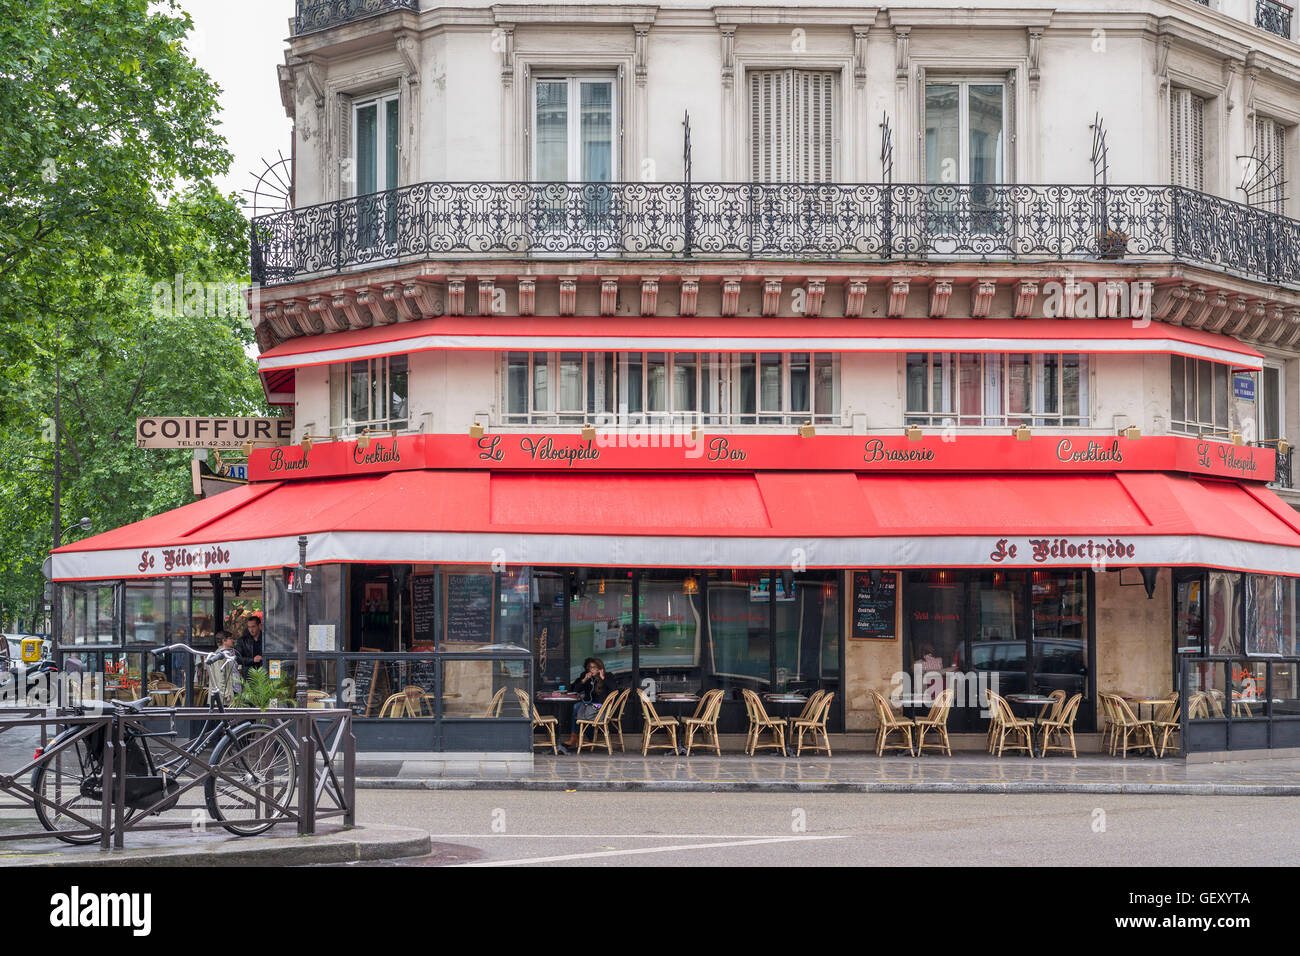 A view towards Le Velocipede Bar and Brasserie in Paris. - Stock Image